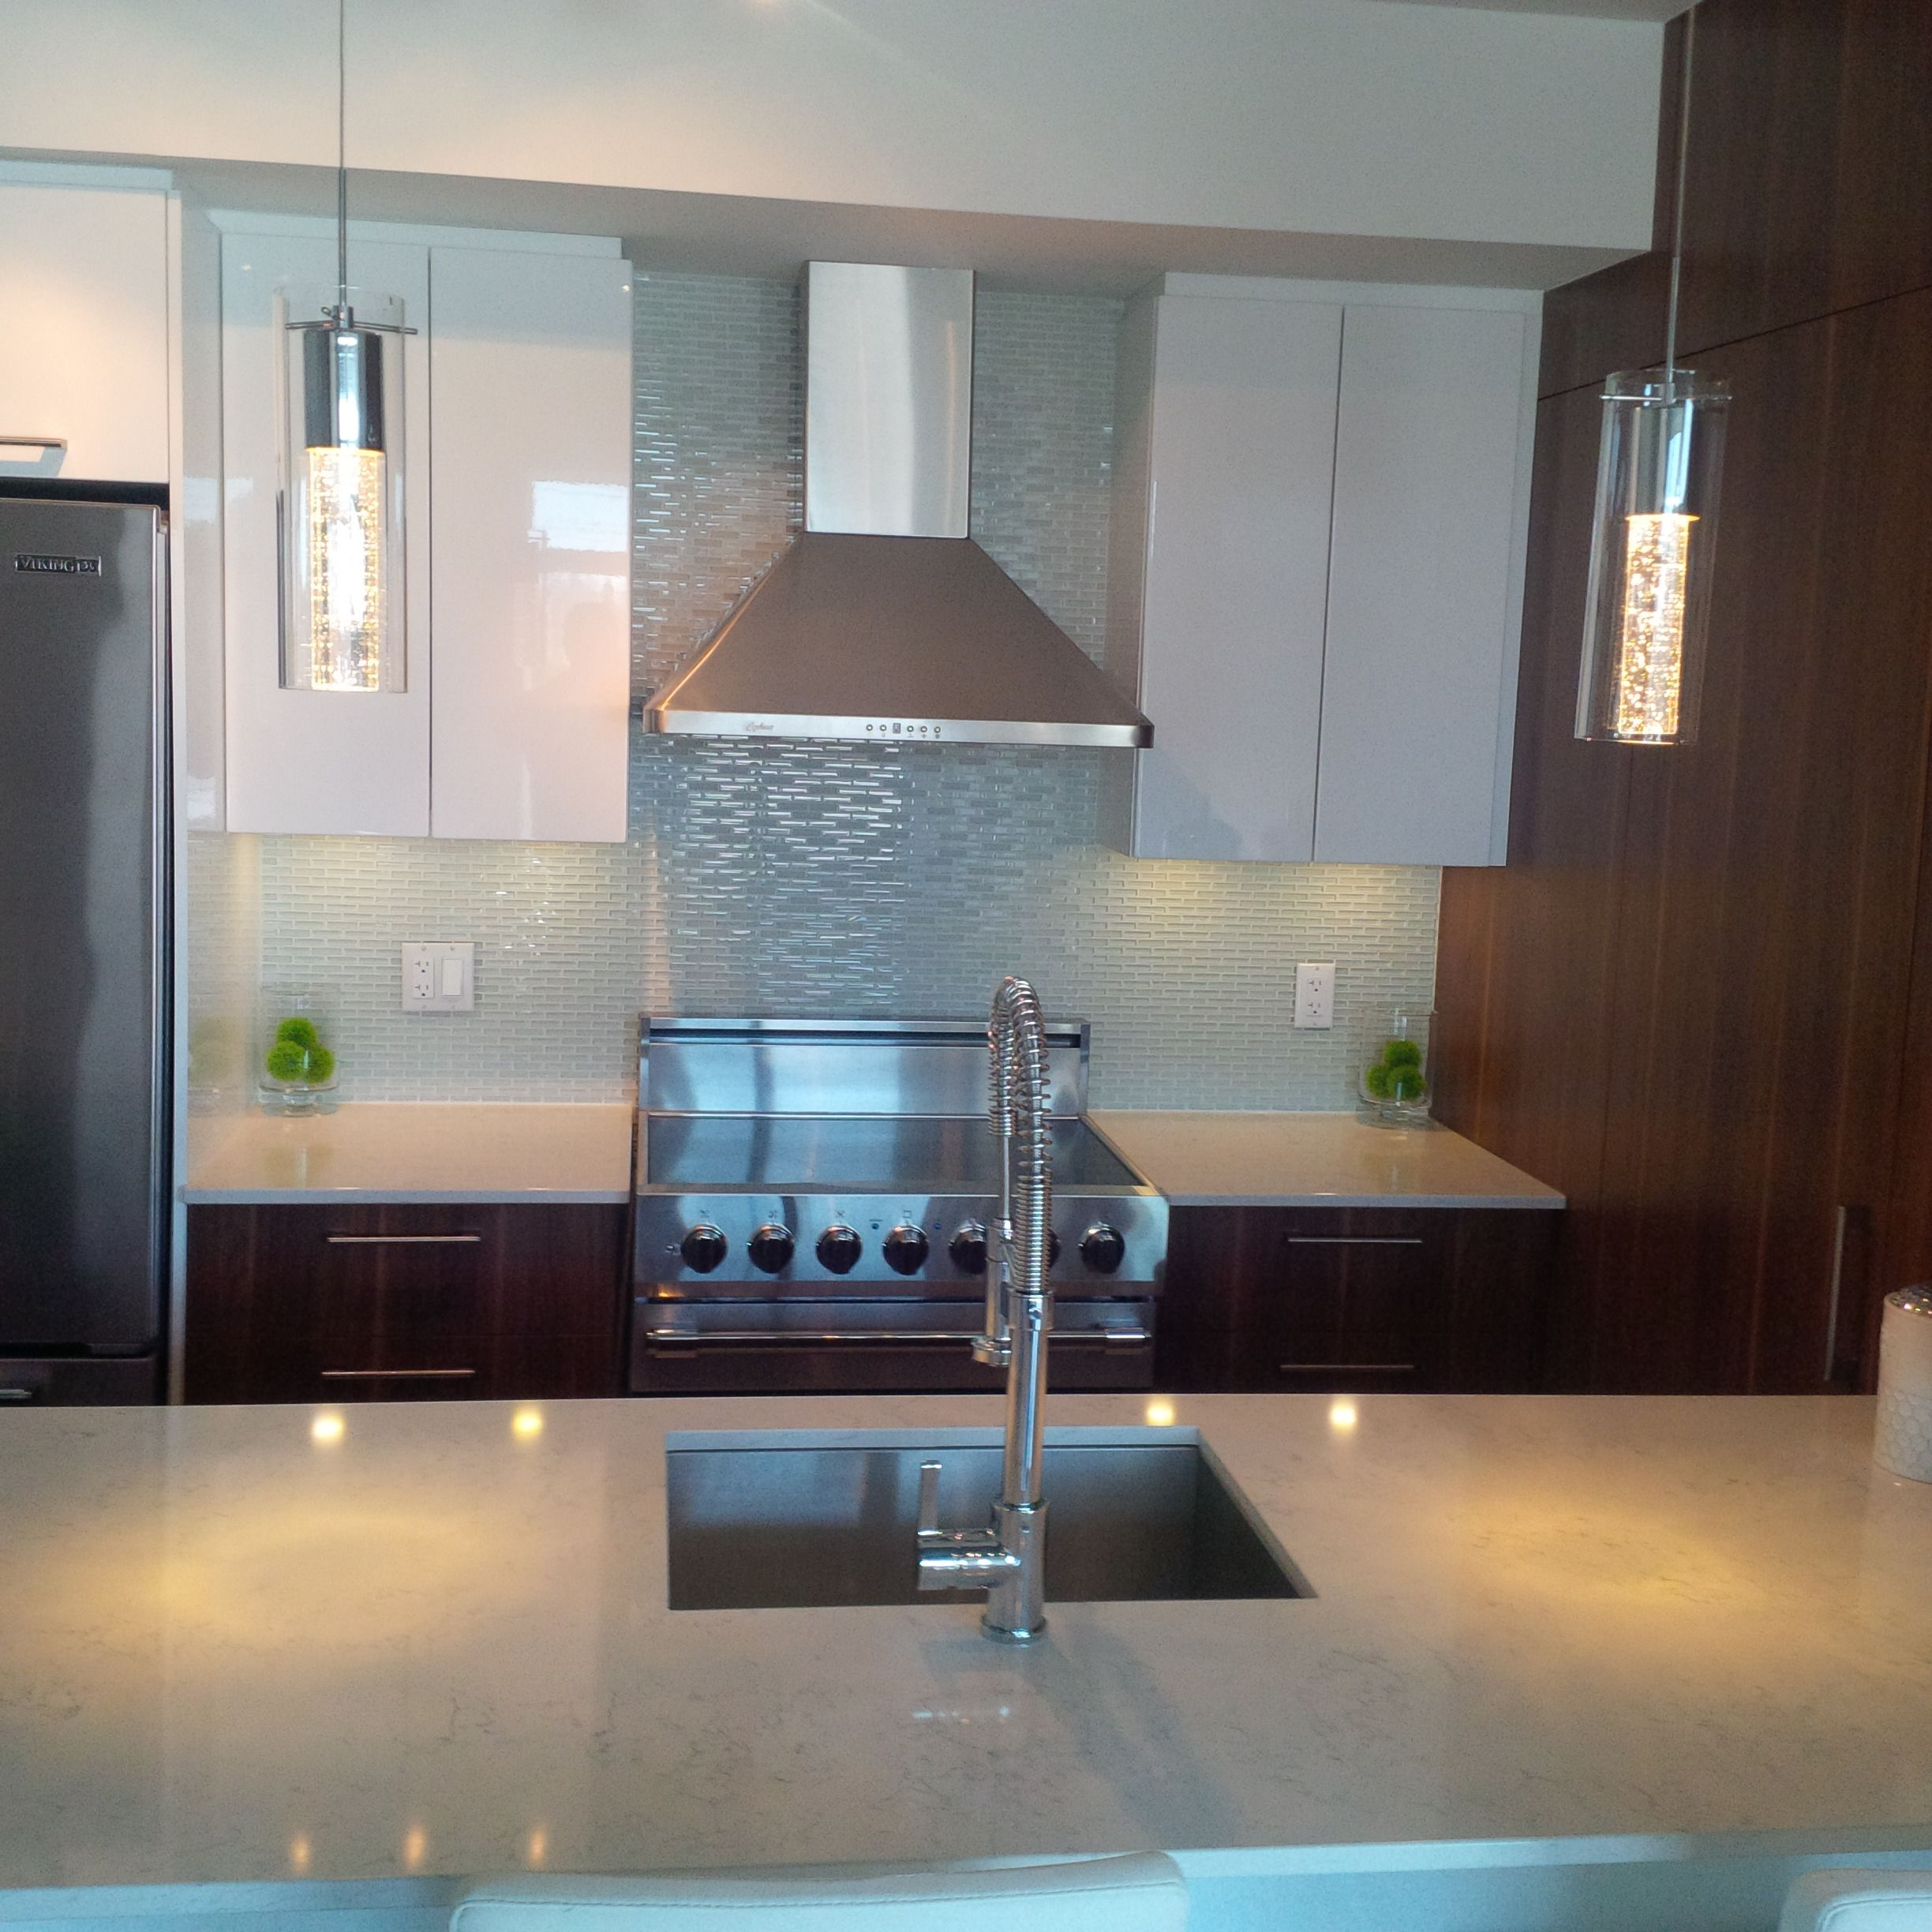 Modern white and dark wood grain kitchen with stainless